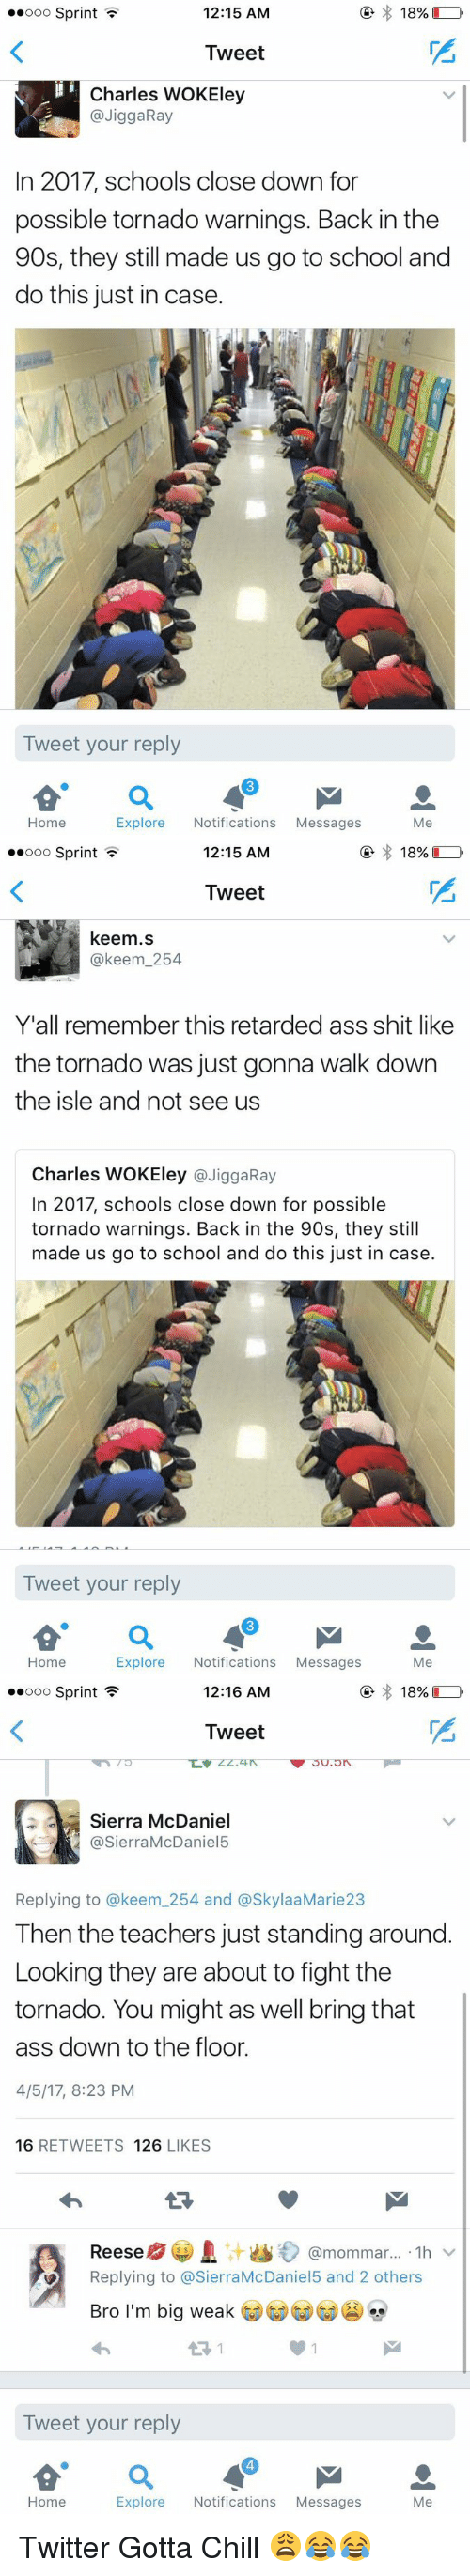 Ass, Blackpeopletwitter, and Chill: Ooo Sprint  12:15 AM  18%  Tweet  Charles WOKEley  JiggaRay  In 2017, schools close down for  possible tornado warnings. Back in the  90s, they still made us go to school and  do this just in case.  Tweet your reply  Home  Explore  Notifications  Messages  Me   Ooo Sprint  12:15 AM  18%  Tweet  keem.s  keem 254  Y'all remember this retarded ass shit like  the tornado was just gonna walk down  the isle and not see us  Charles WOKEley  a JiggaRay  In 2017, schools close down for possible  tornado warnings. Back in the 90s, they still  made us go to school and do this just in case.  Tweet your reply  Home  Explore  Notifications  Messages  Me   12:16 AM  18%  ooo Sprint  Tweet  Sierra McDaniel  @Sierra McDaniel5  Replying to a keem 254 and SkylaaMarie23  Then the teachers just standing around.  Looking they are about to fight the  tornado. You might as well bring that  ass down to the floor.  4/5/17, 8:23 PM  16  RETWEETS  126  LIKES  @mommar.... 1h v  Reese  Replying to @SierraMcDaniel5 and 2 others  Bro I'm big weak  es  Tweet your reply  Home  Explore  Notifications  Messages  Me Twitter Gotta Chill 😩😂😂